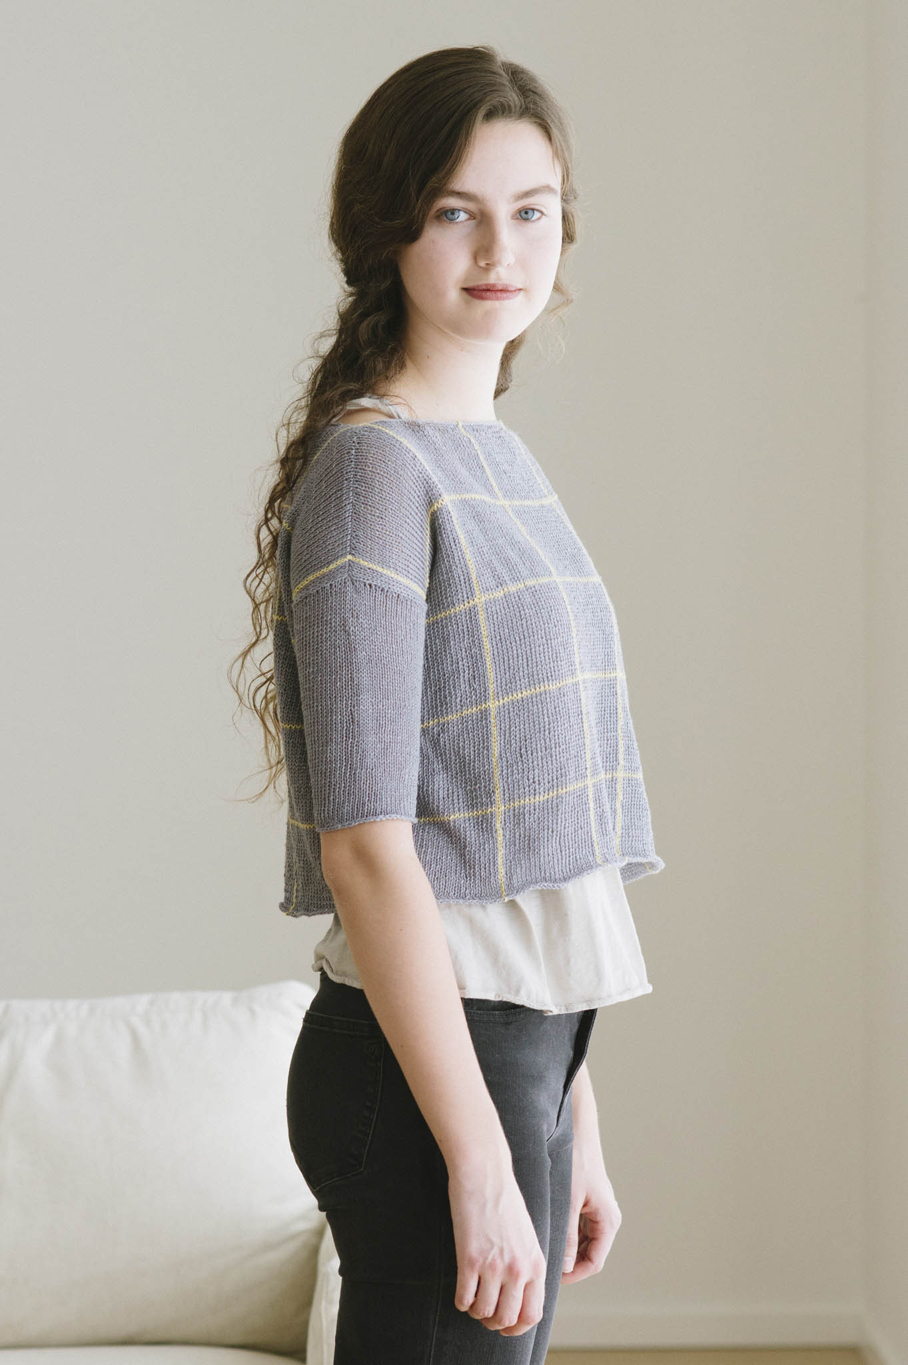 5620e925dadb856f-quince-co-zara-dianna-walla-knitting-pattern-sparrow-2